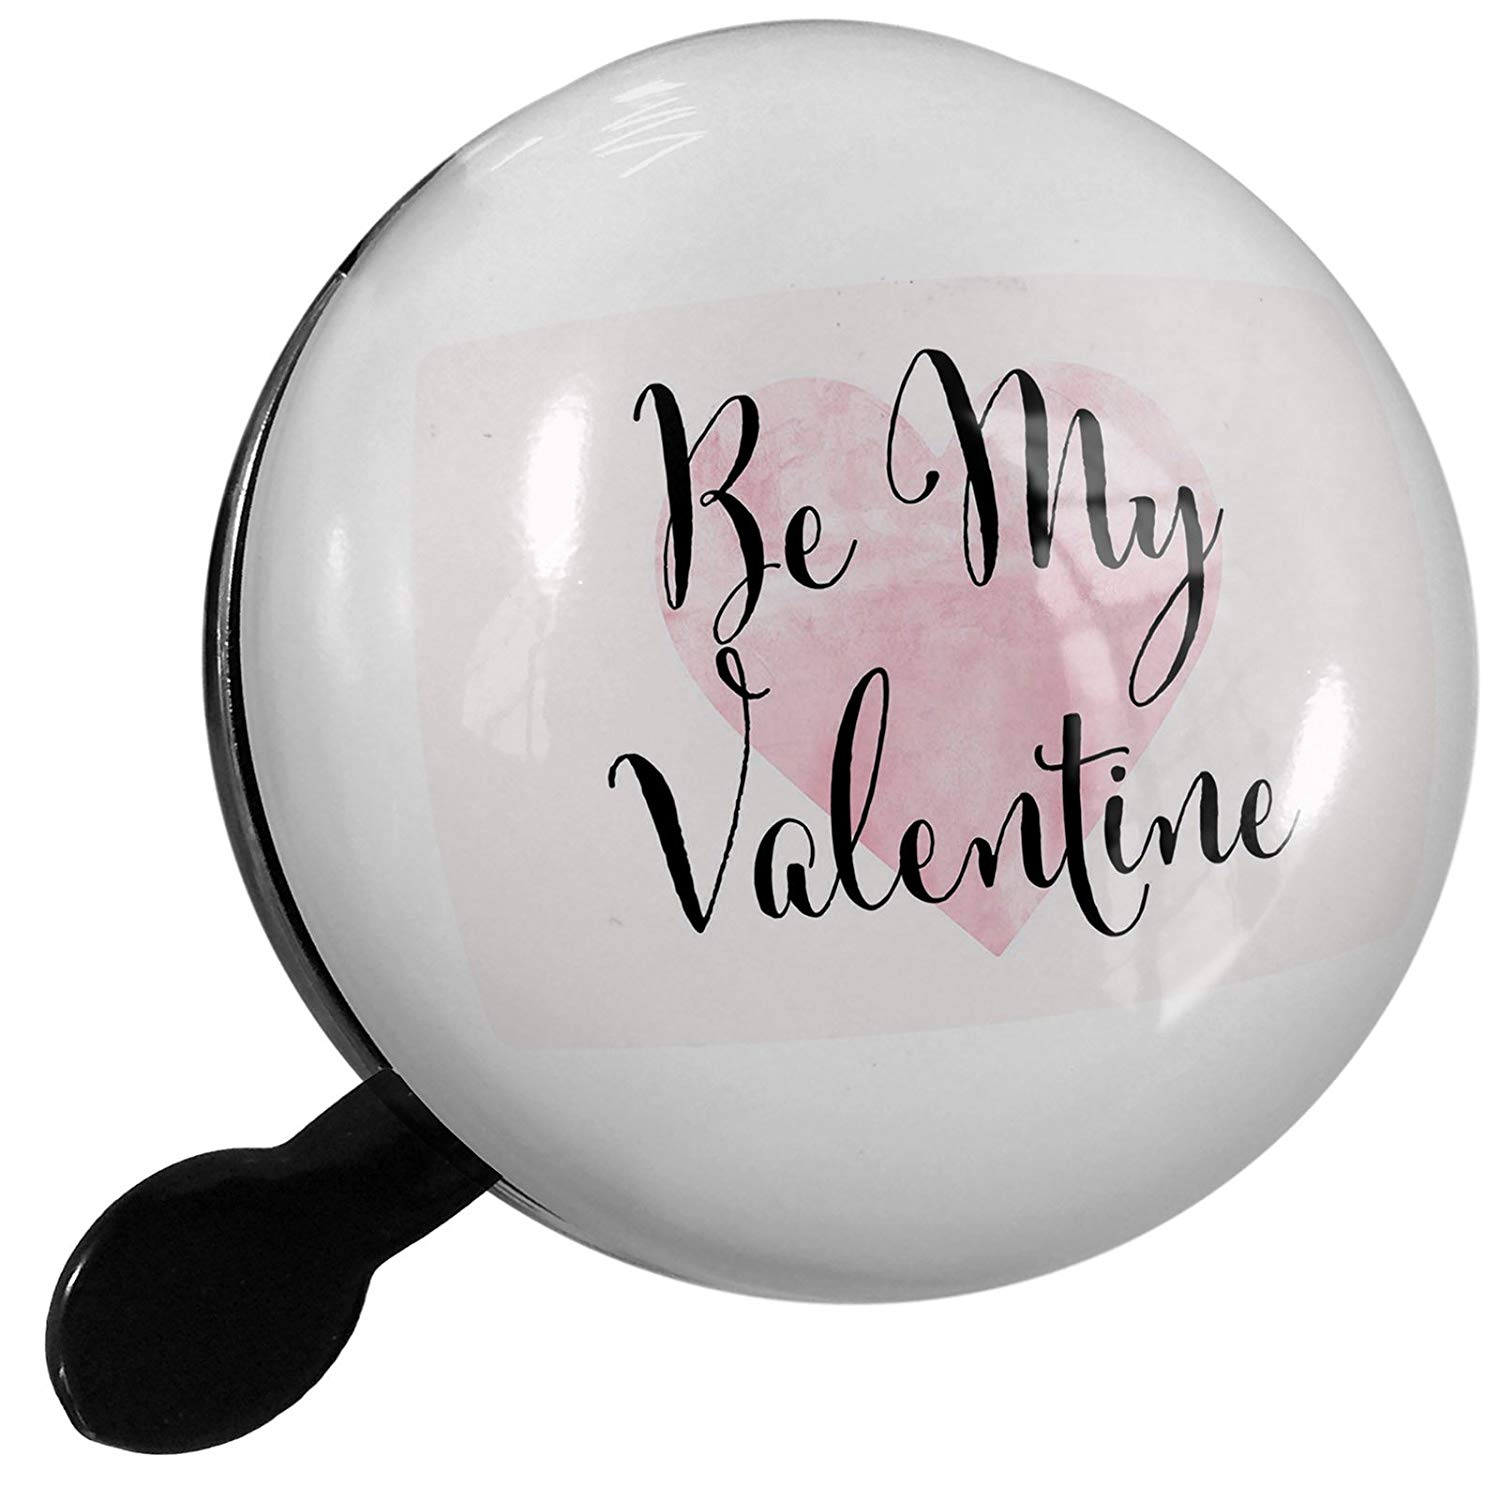 701e7c94201 Get Quotations · Small Bike Bell Be My Valentine Valentine s Day Fancy  Heart - NEONBLOND